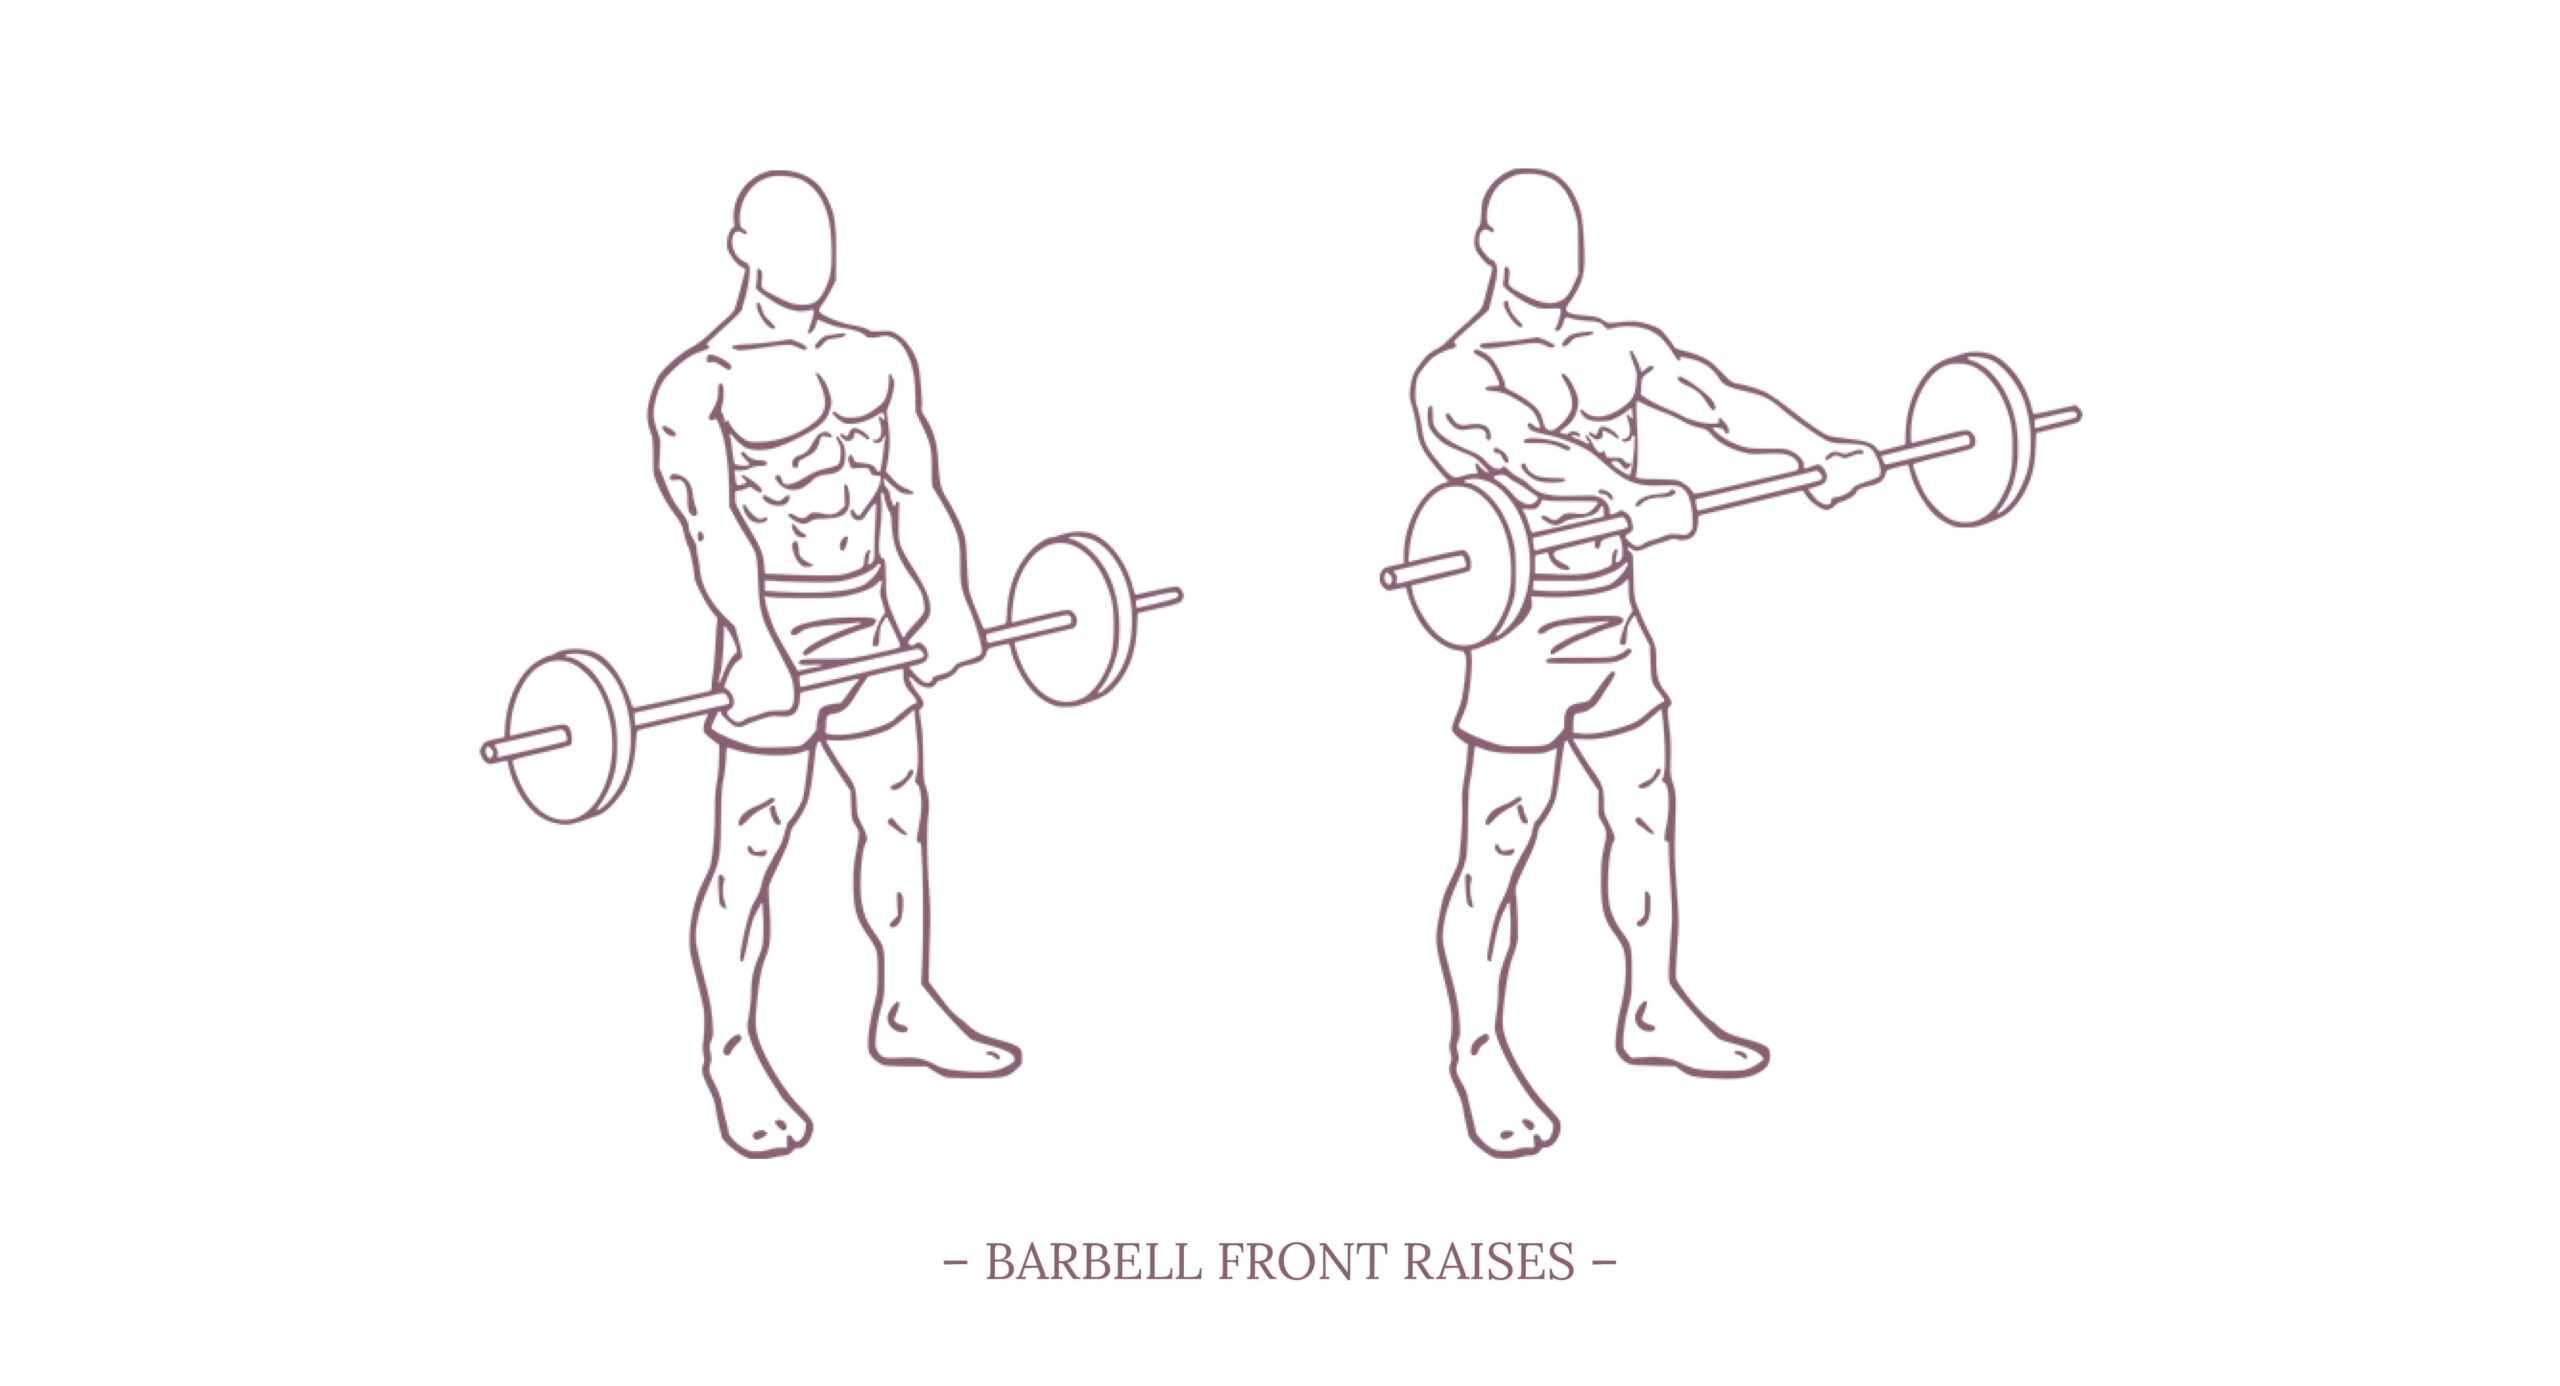 Barbell Front Raises Illustration